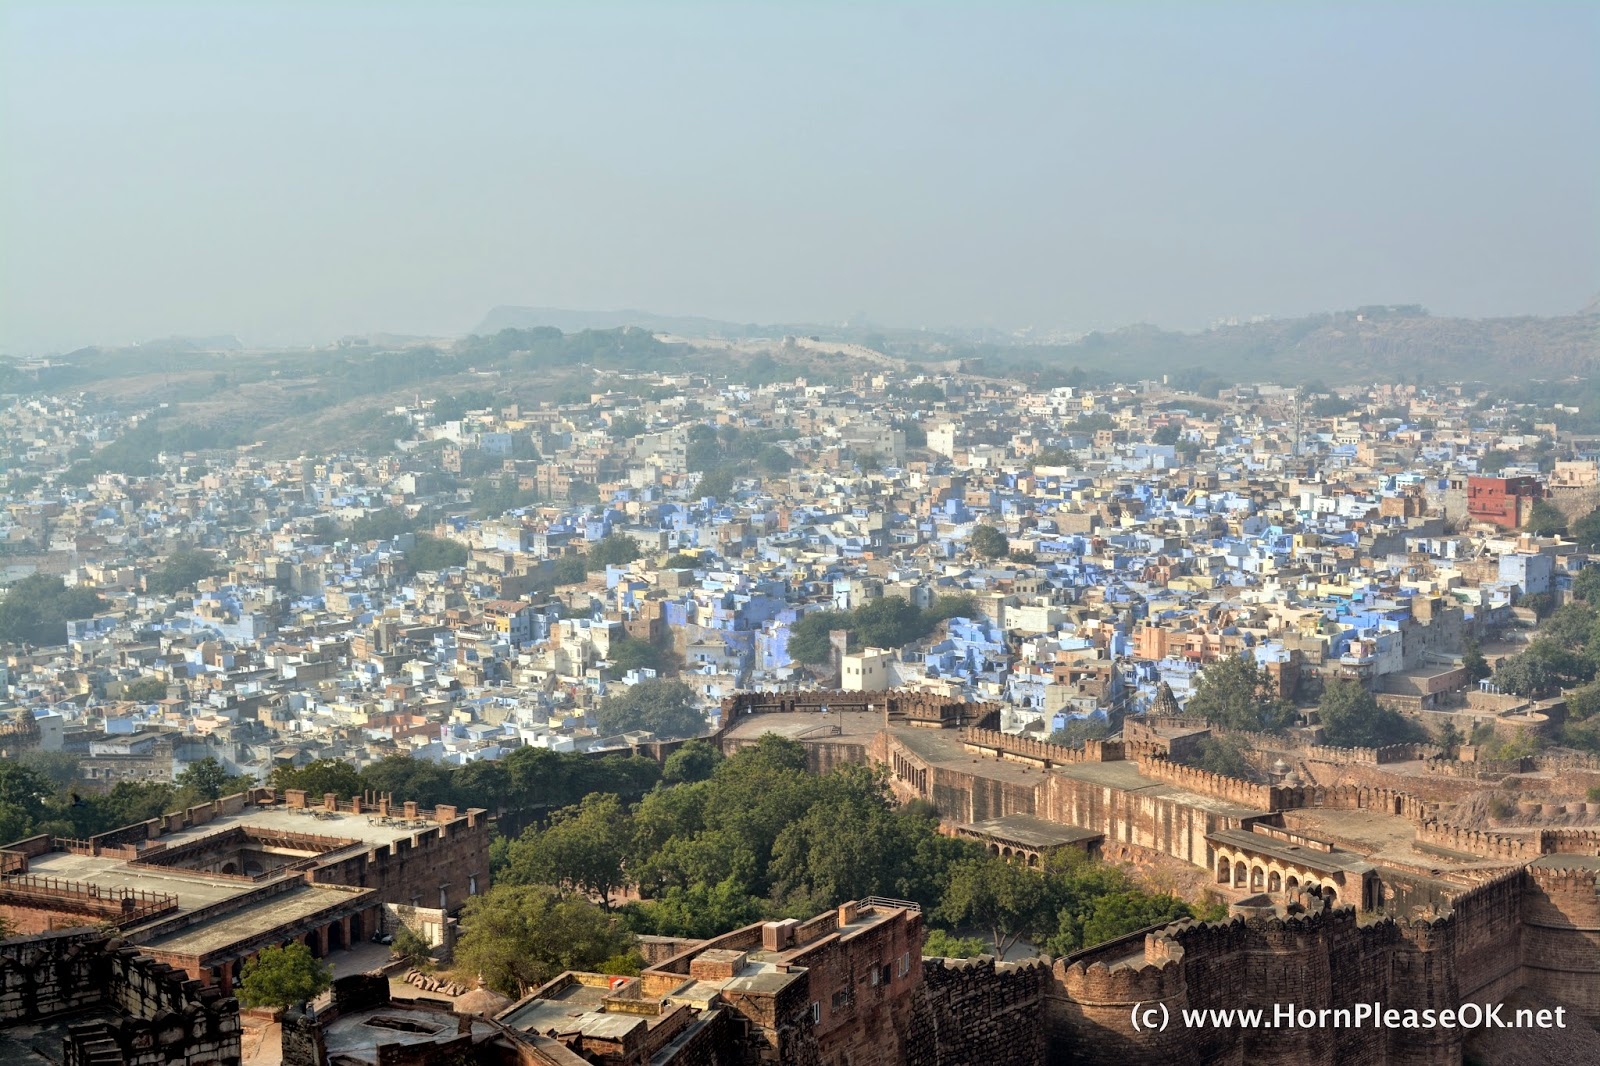 A view of Jodhpur, The Blue City